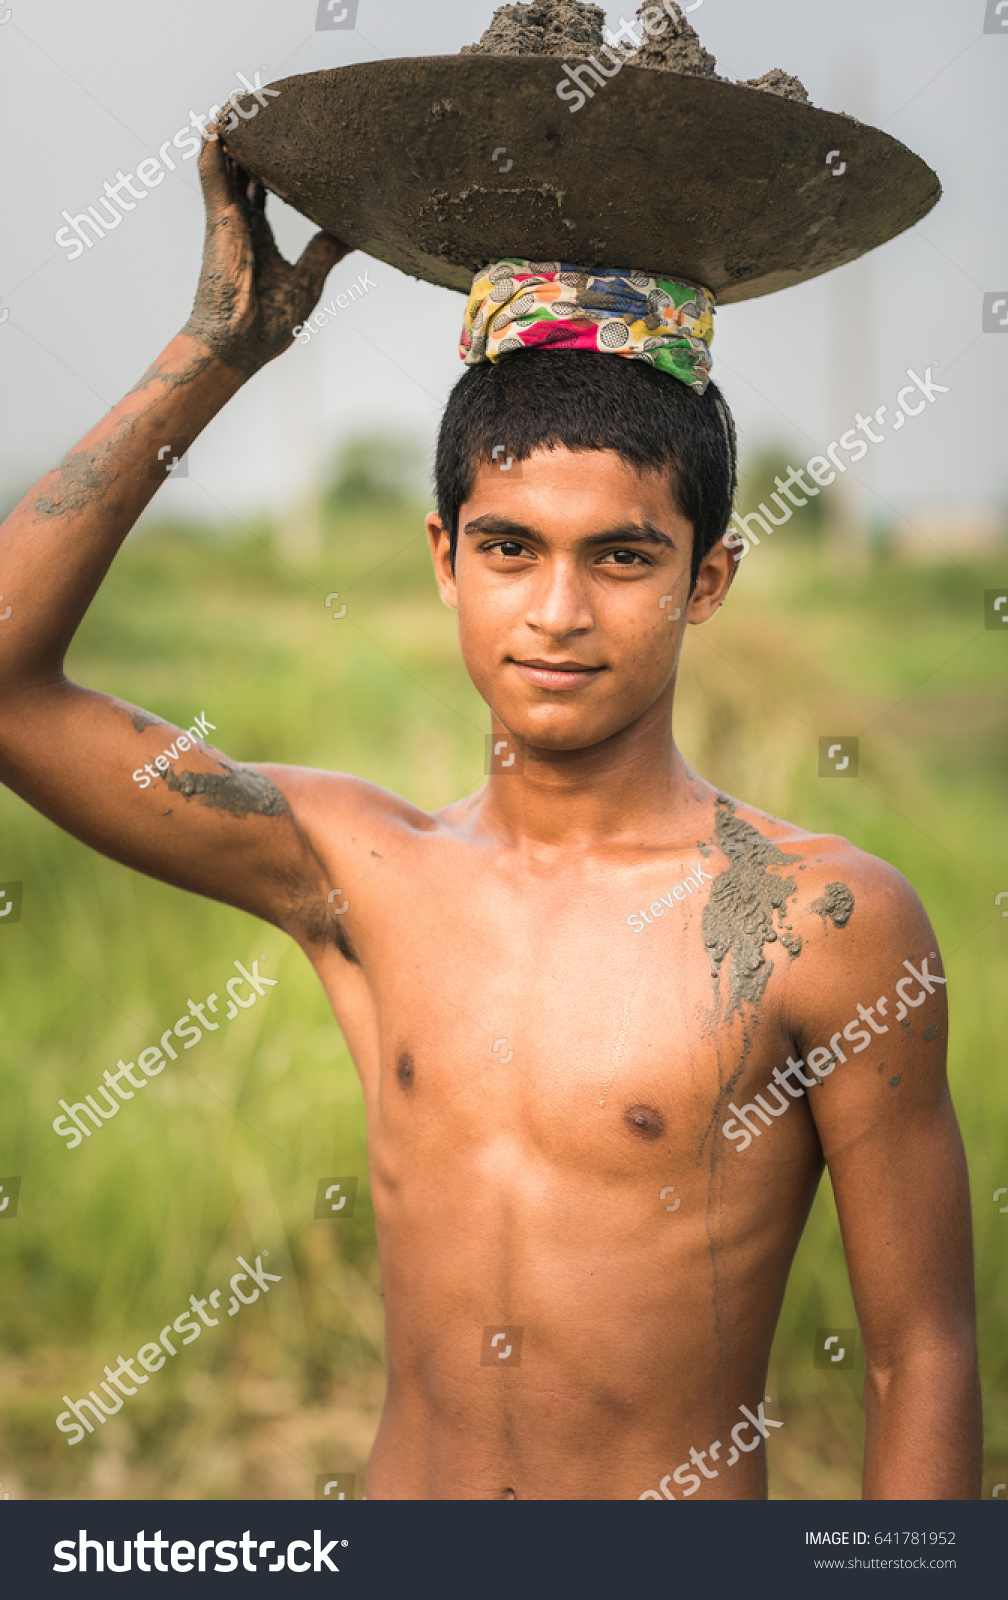 17 Year Old From Six Mile Killed In Wreck Identified: Dhaka Bangladesh May 12 2017 Bangladeshi Stock Photo